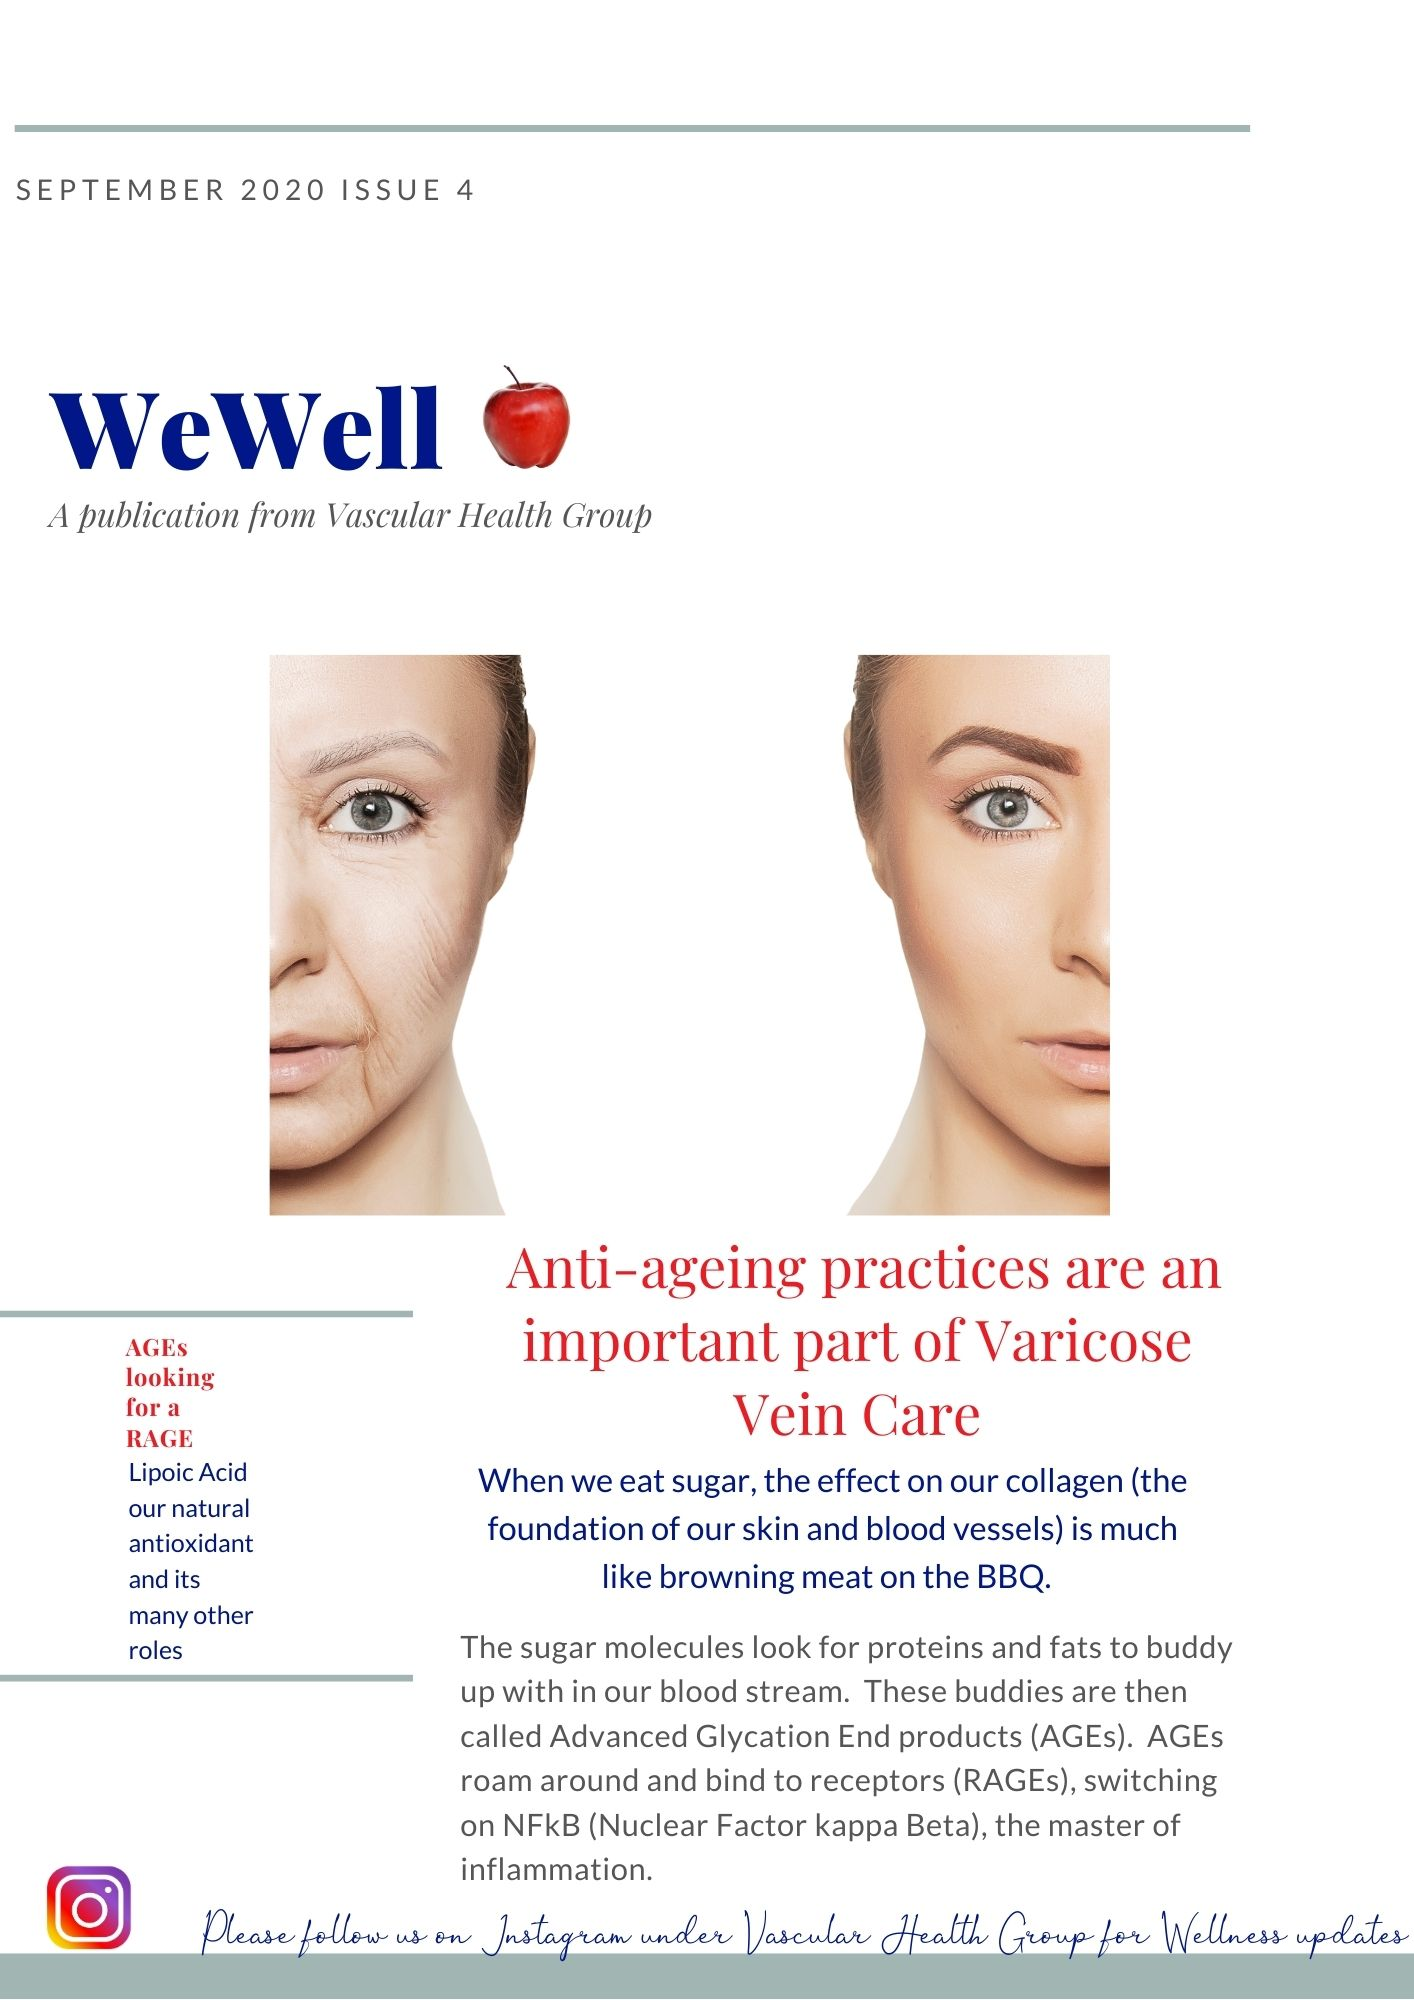 Vascular Health Group Newsletter WeWell Issue 4